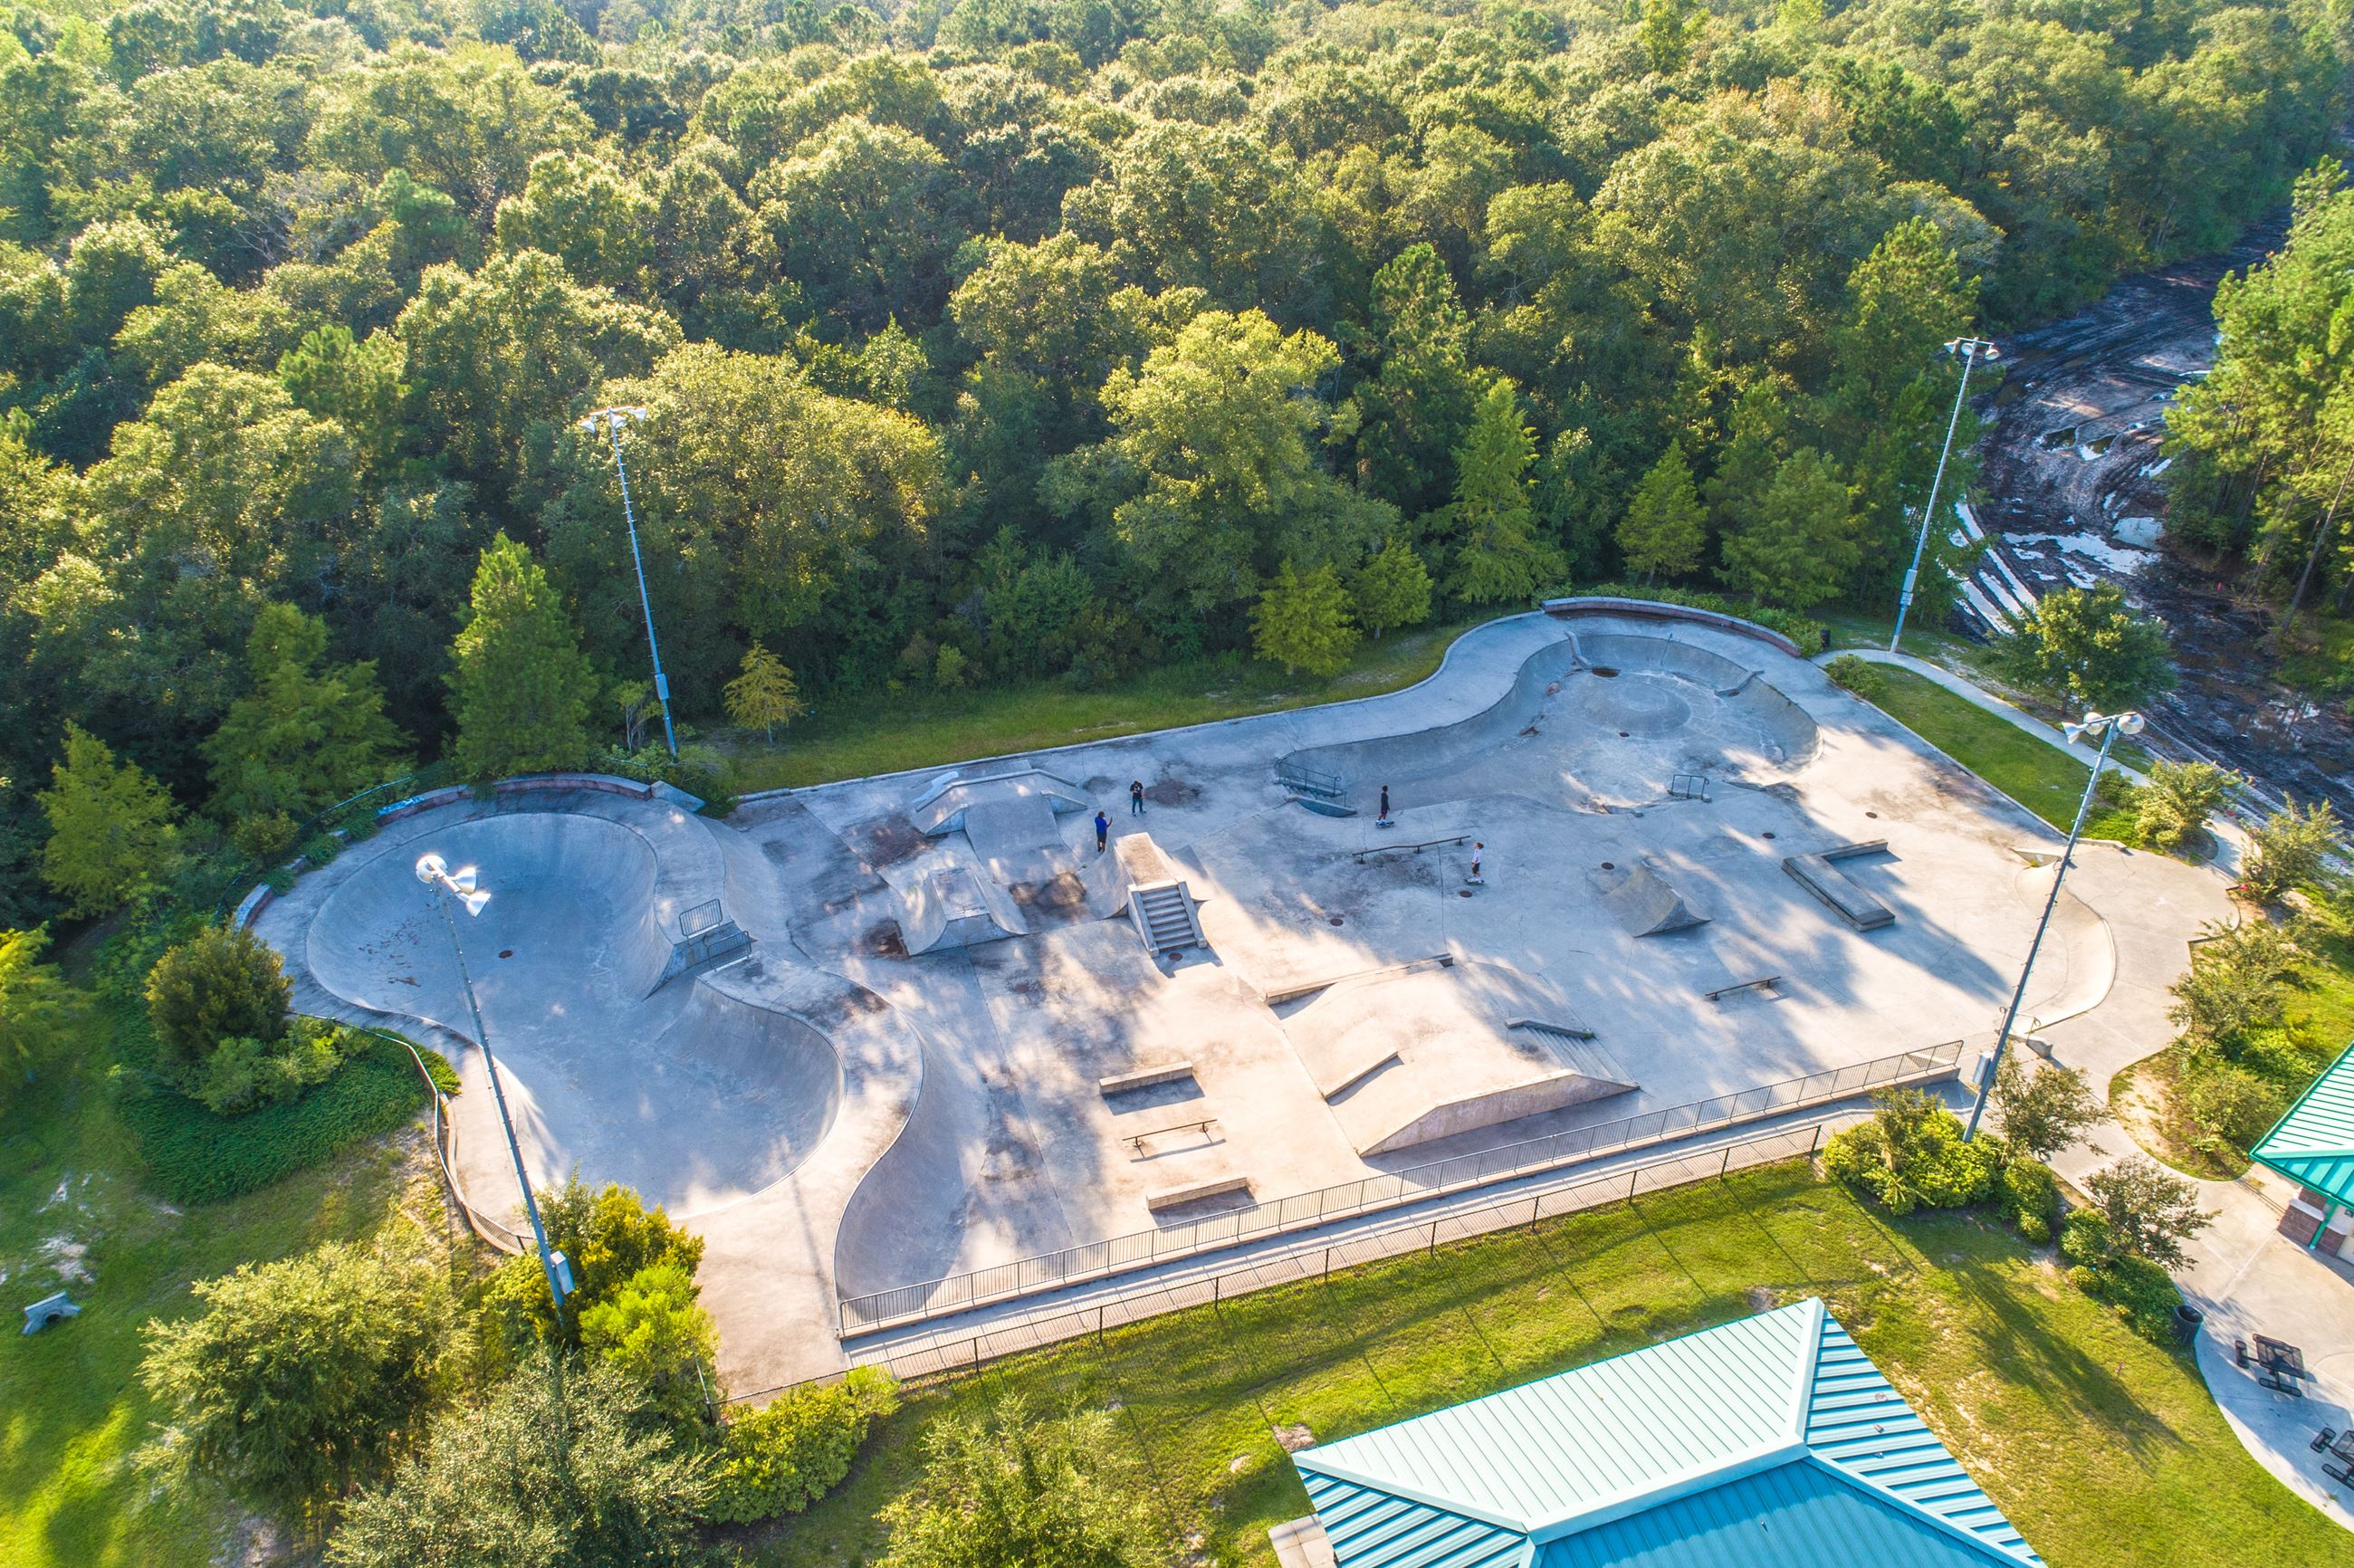 An image of an aerial view of a concrete skate park.